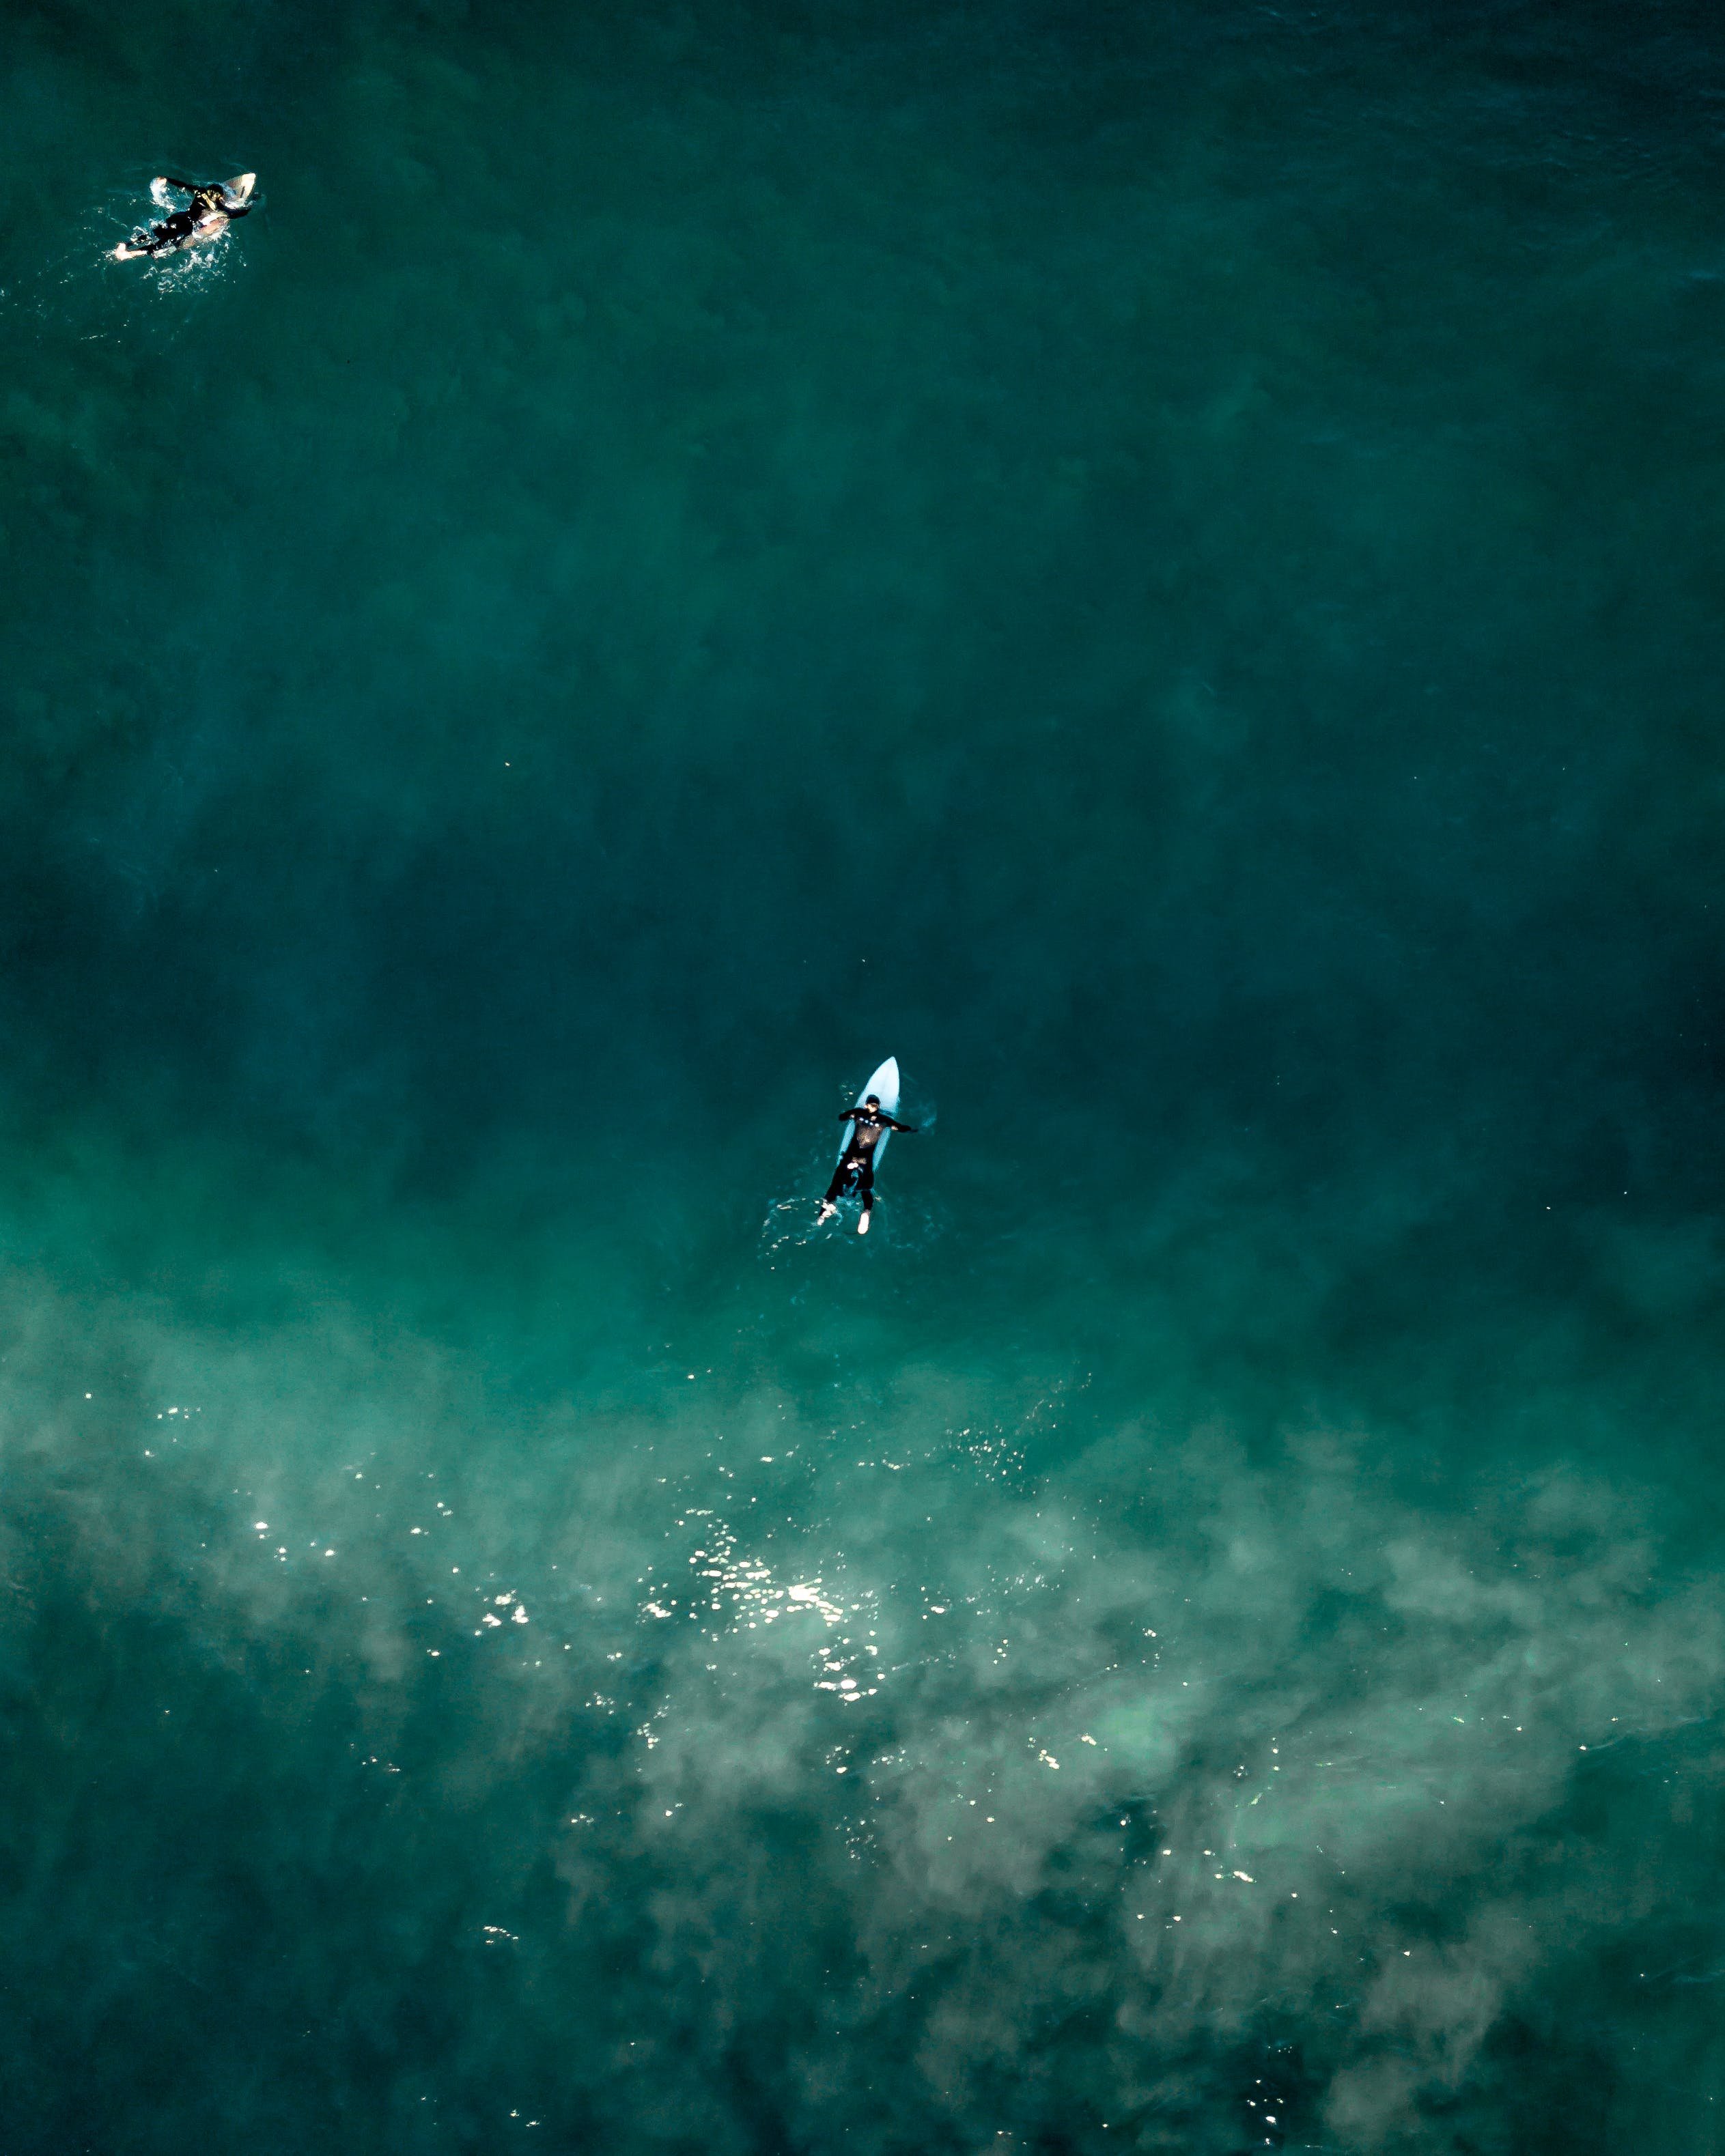 Aerial Photo of People Surfing